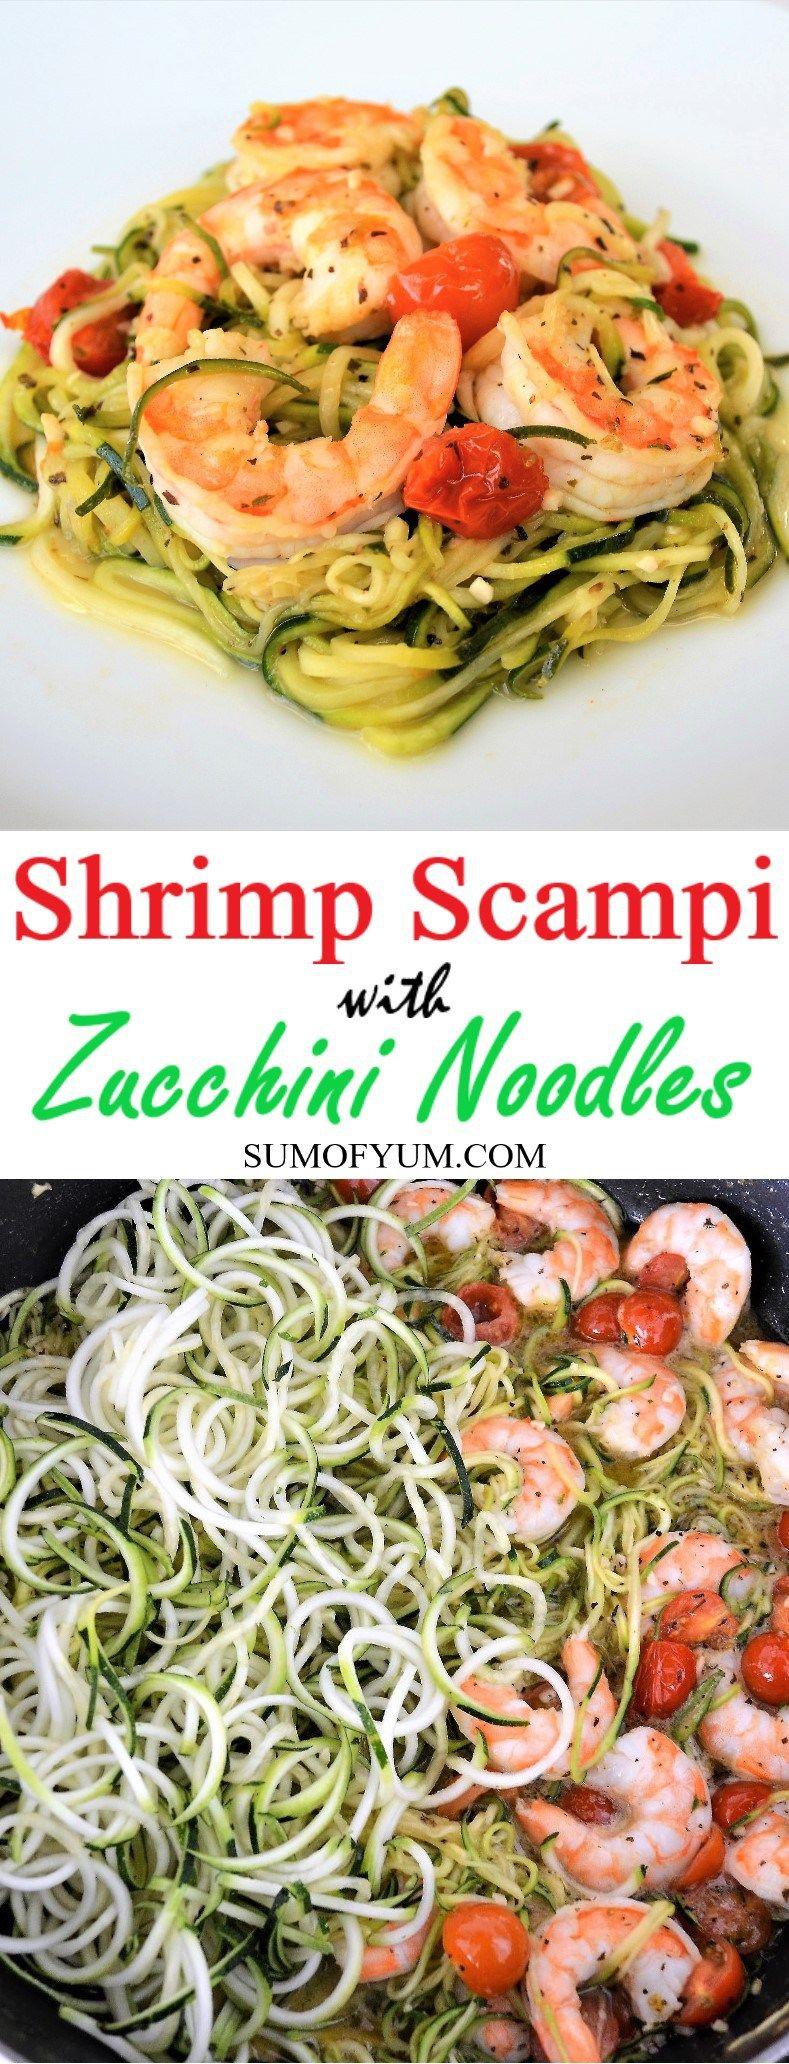 Easy Shrimp Scampi with Zucchini Noodles - Sum of Yum